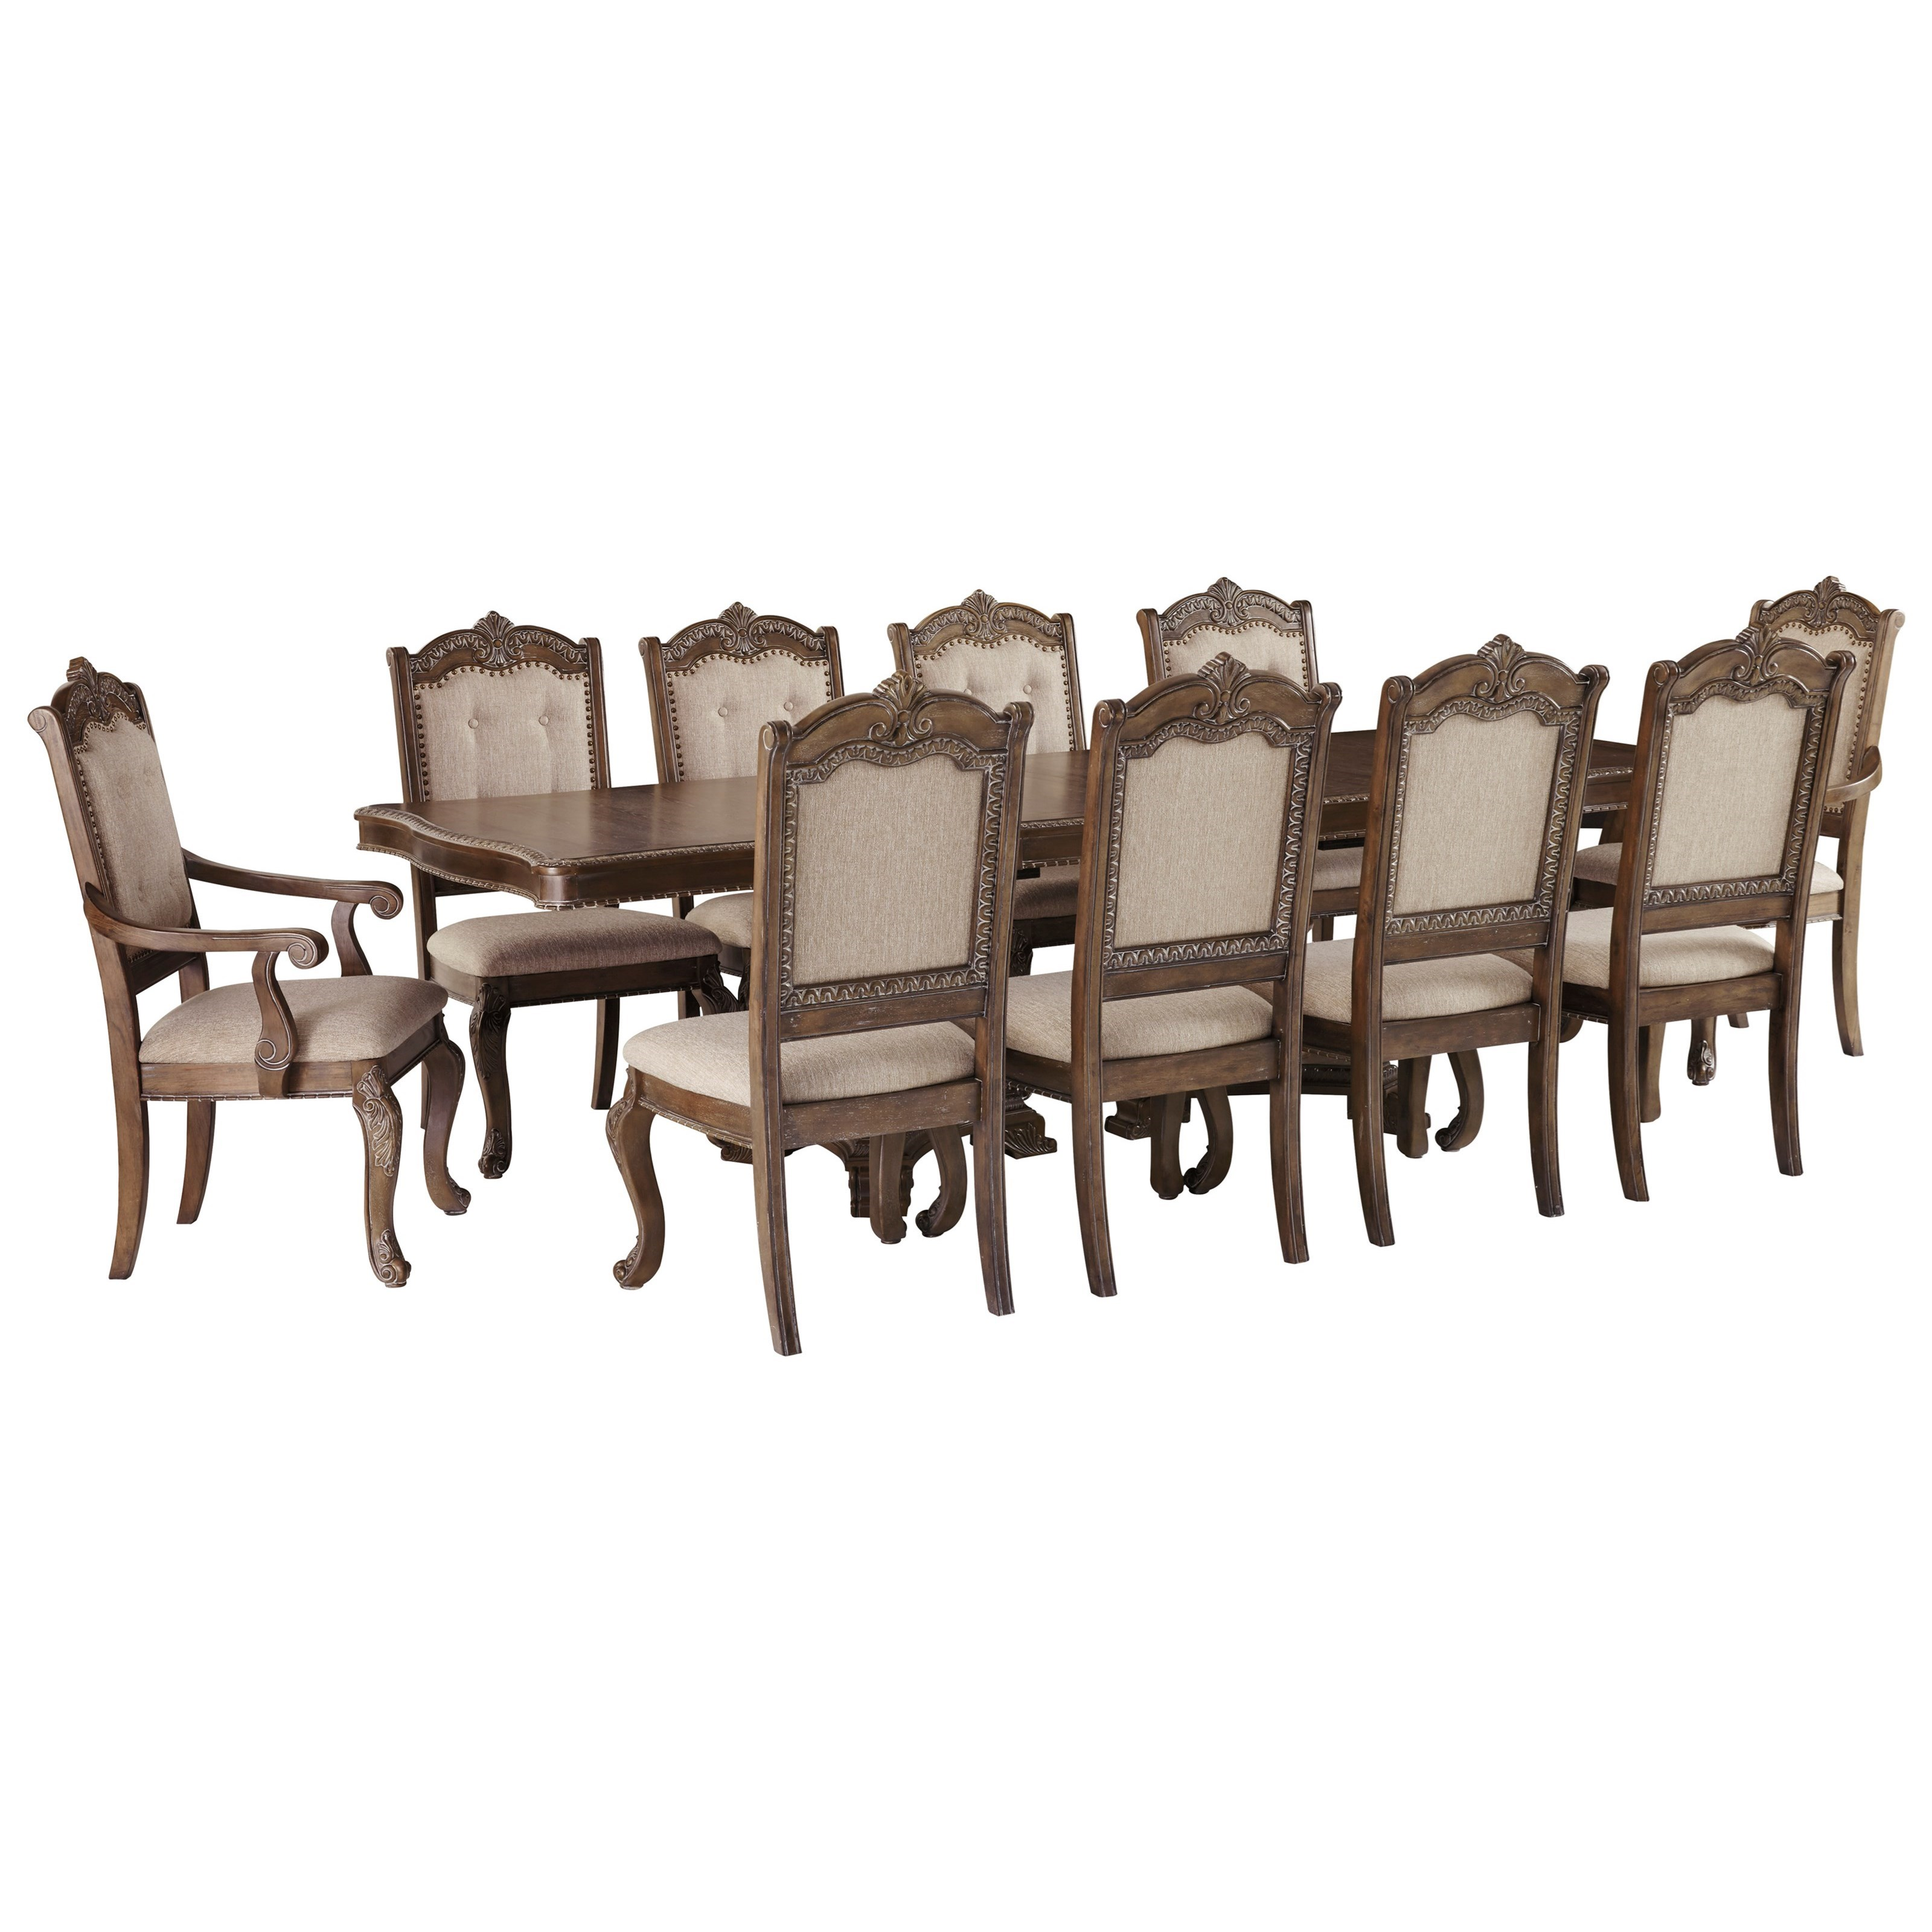 Charmond 11-Piece Rectangular Extension Table Set by Signature Design by Ashley at Northeast Factory Direct